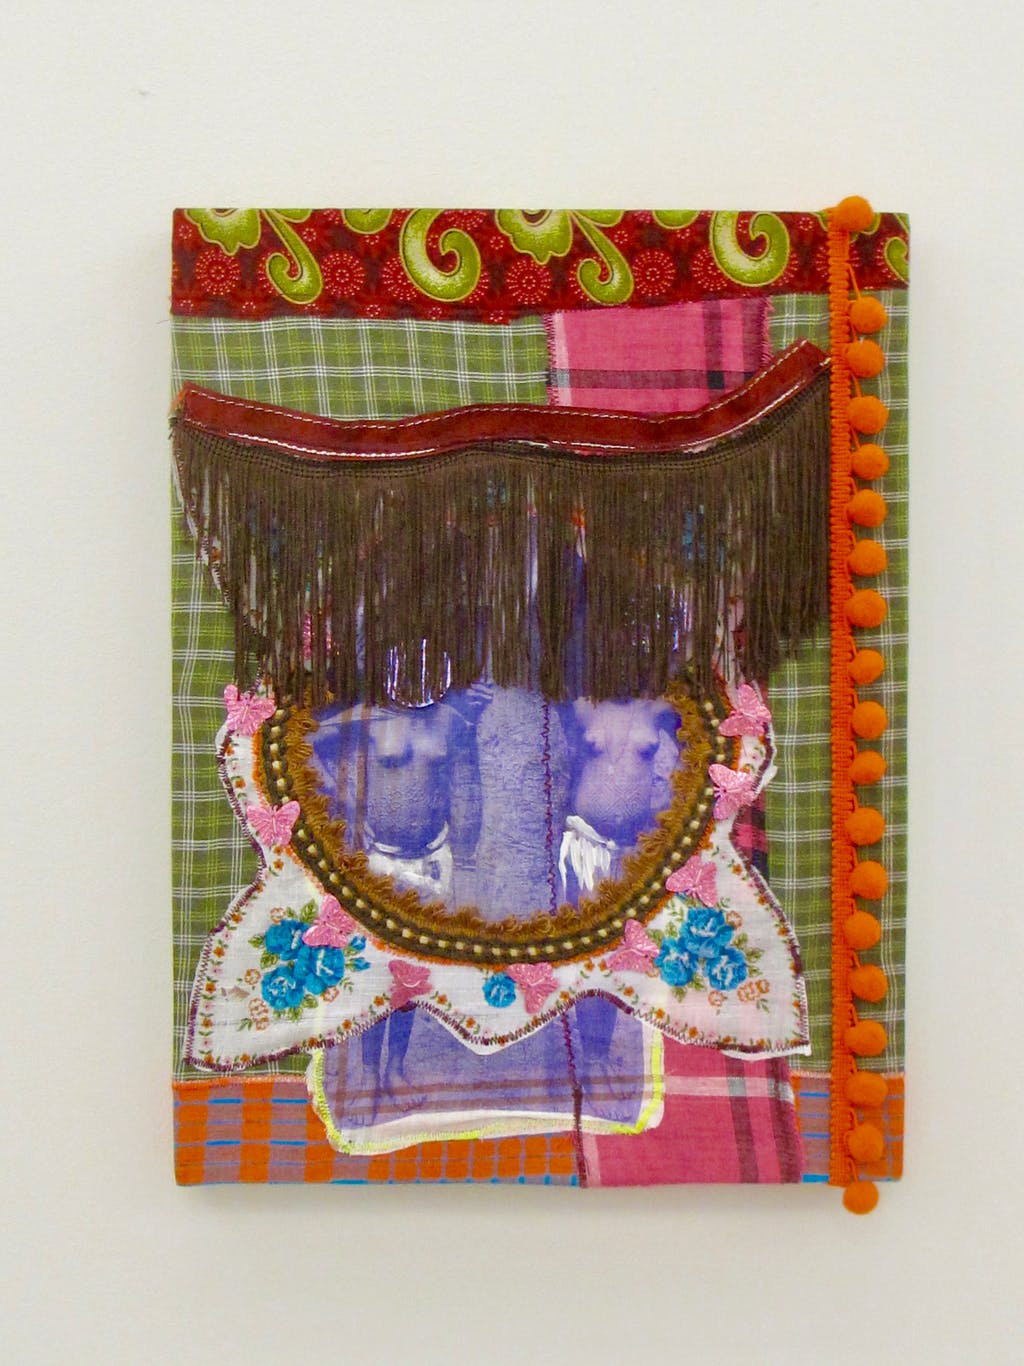 Patricia Kaersenhout Distant Bodies, 2011 Collage of textiles, photographic print on handkerchief Pangi Fabric, glitters, embroidery, stitching, paint 40 x 30 cm, unique (PK2011-1) - © Paris Internationale